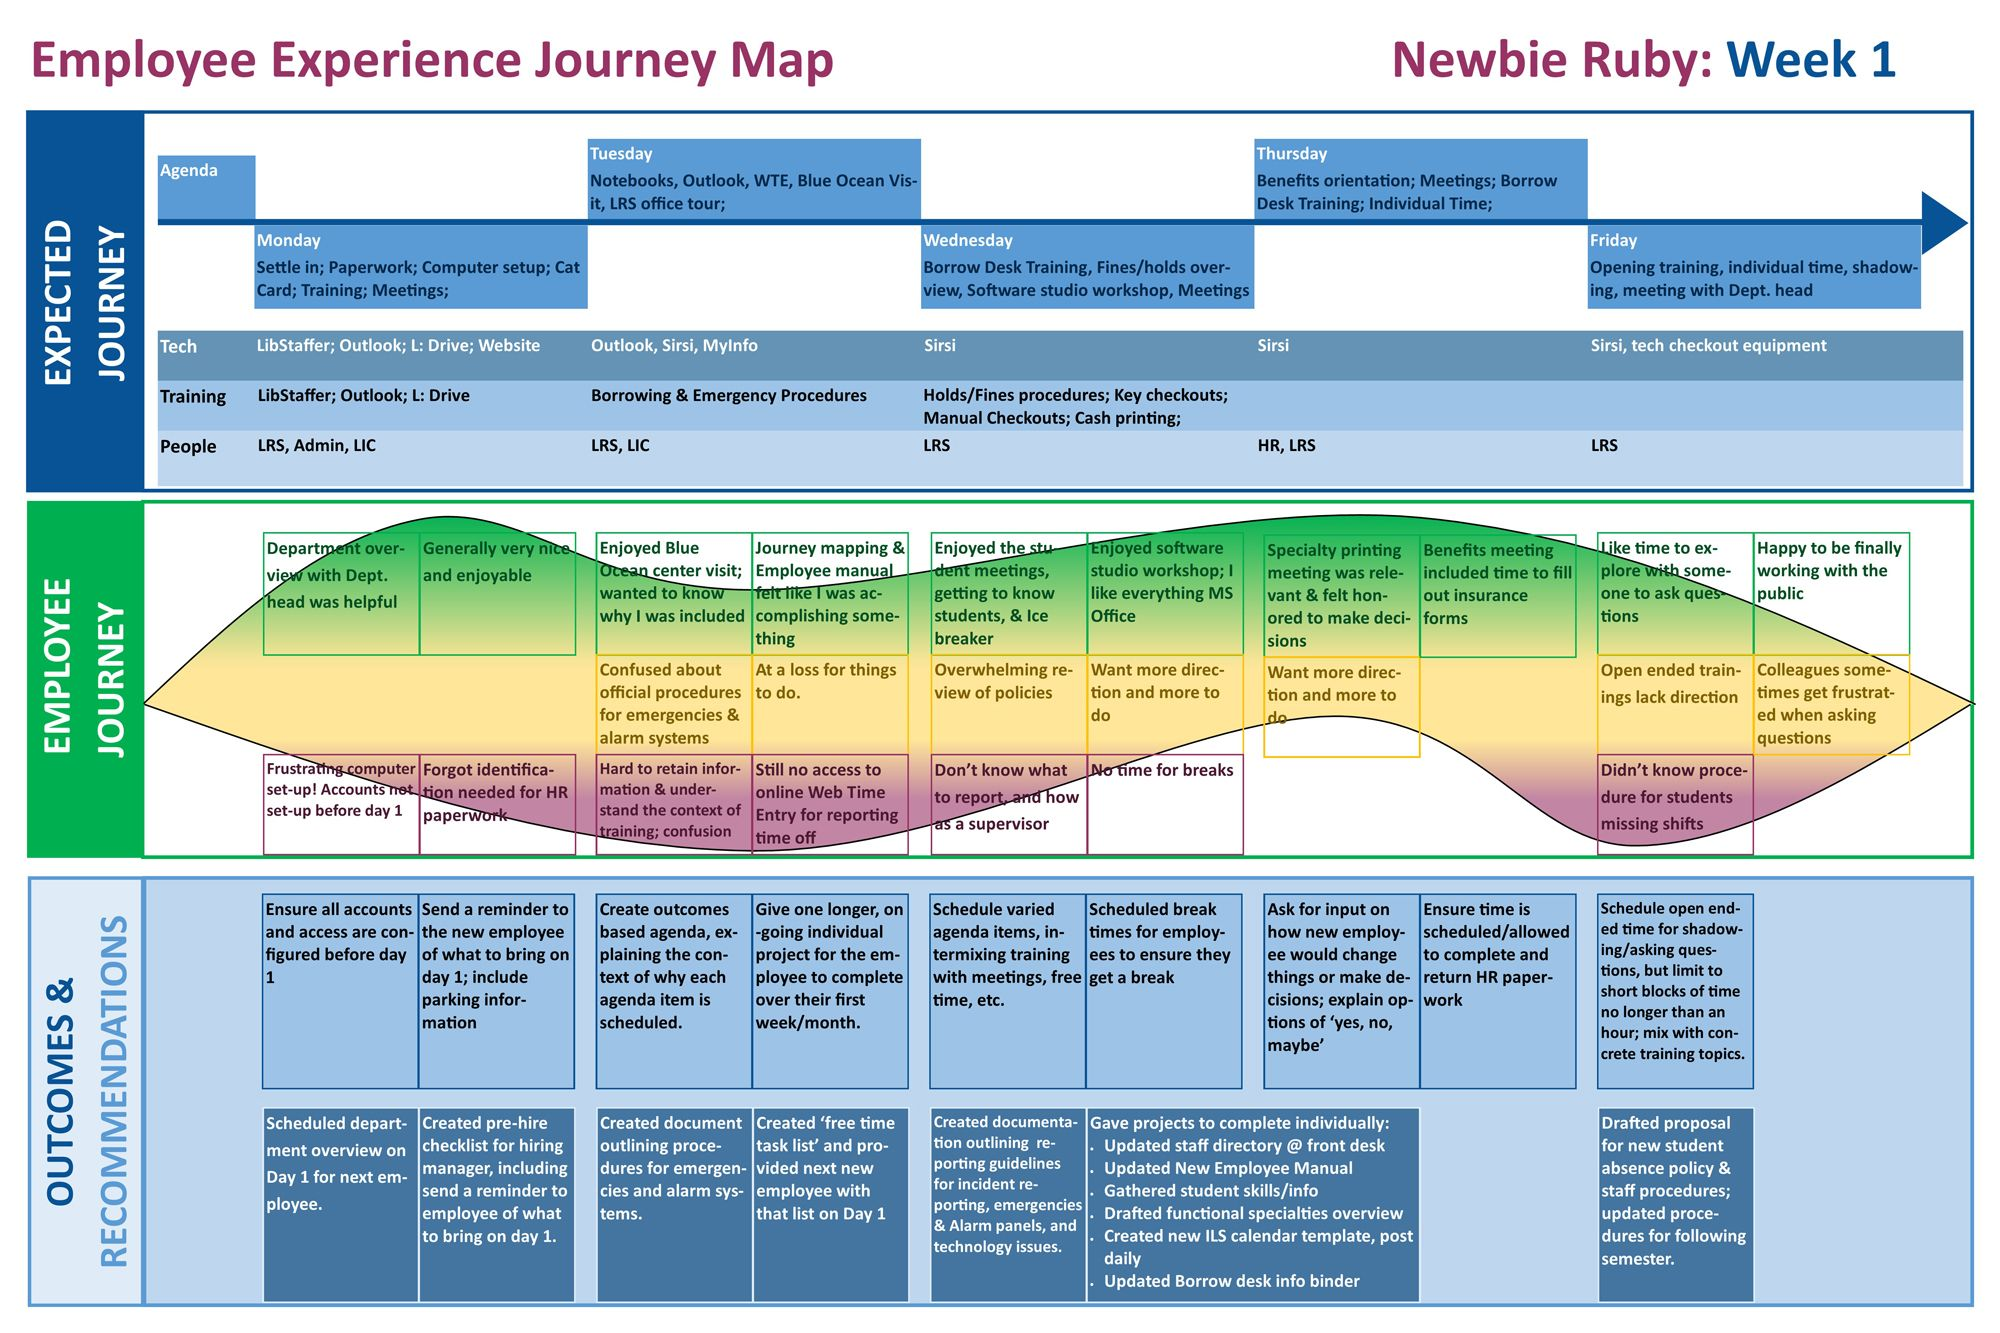 Employee Experience Journey Map For Newbie Ruby S First Week